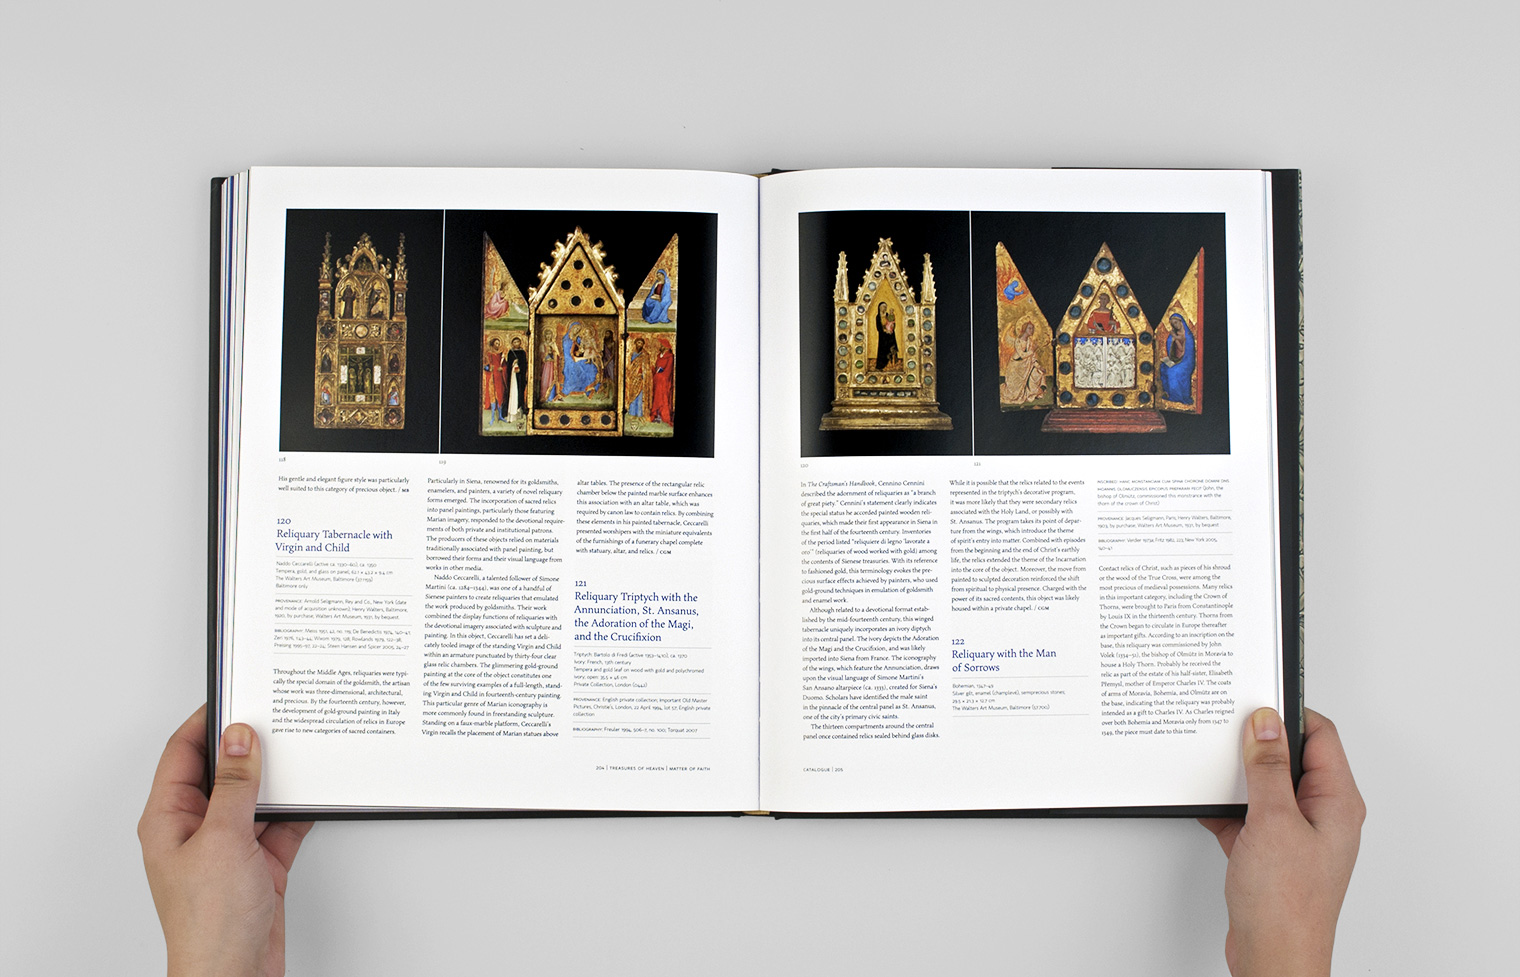 Several similarly shaped reliquaries are featured on one spread.